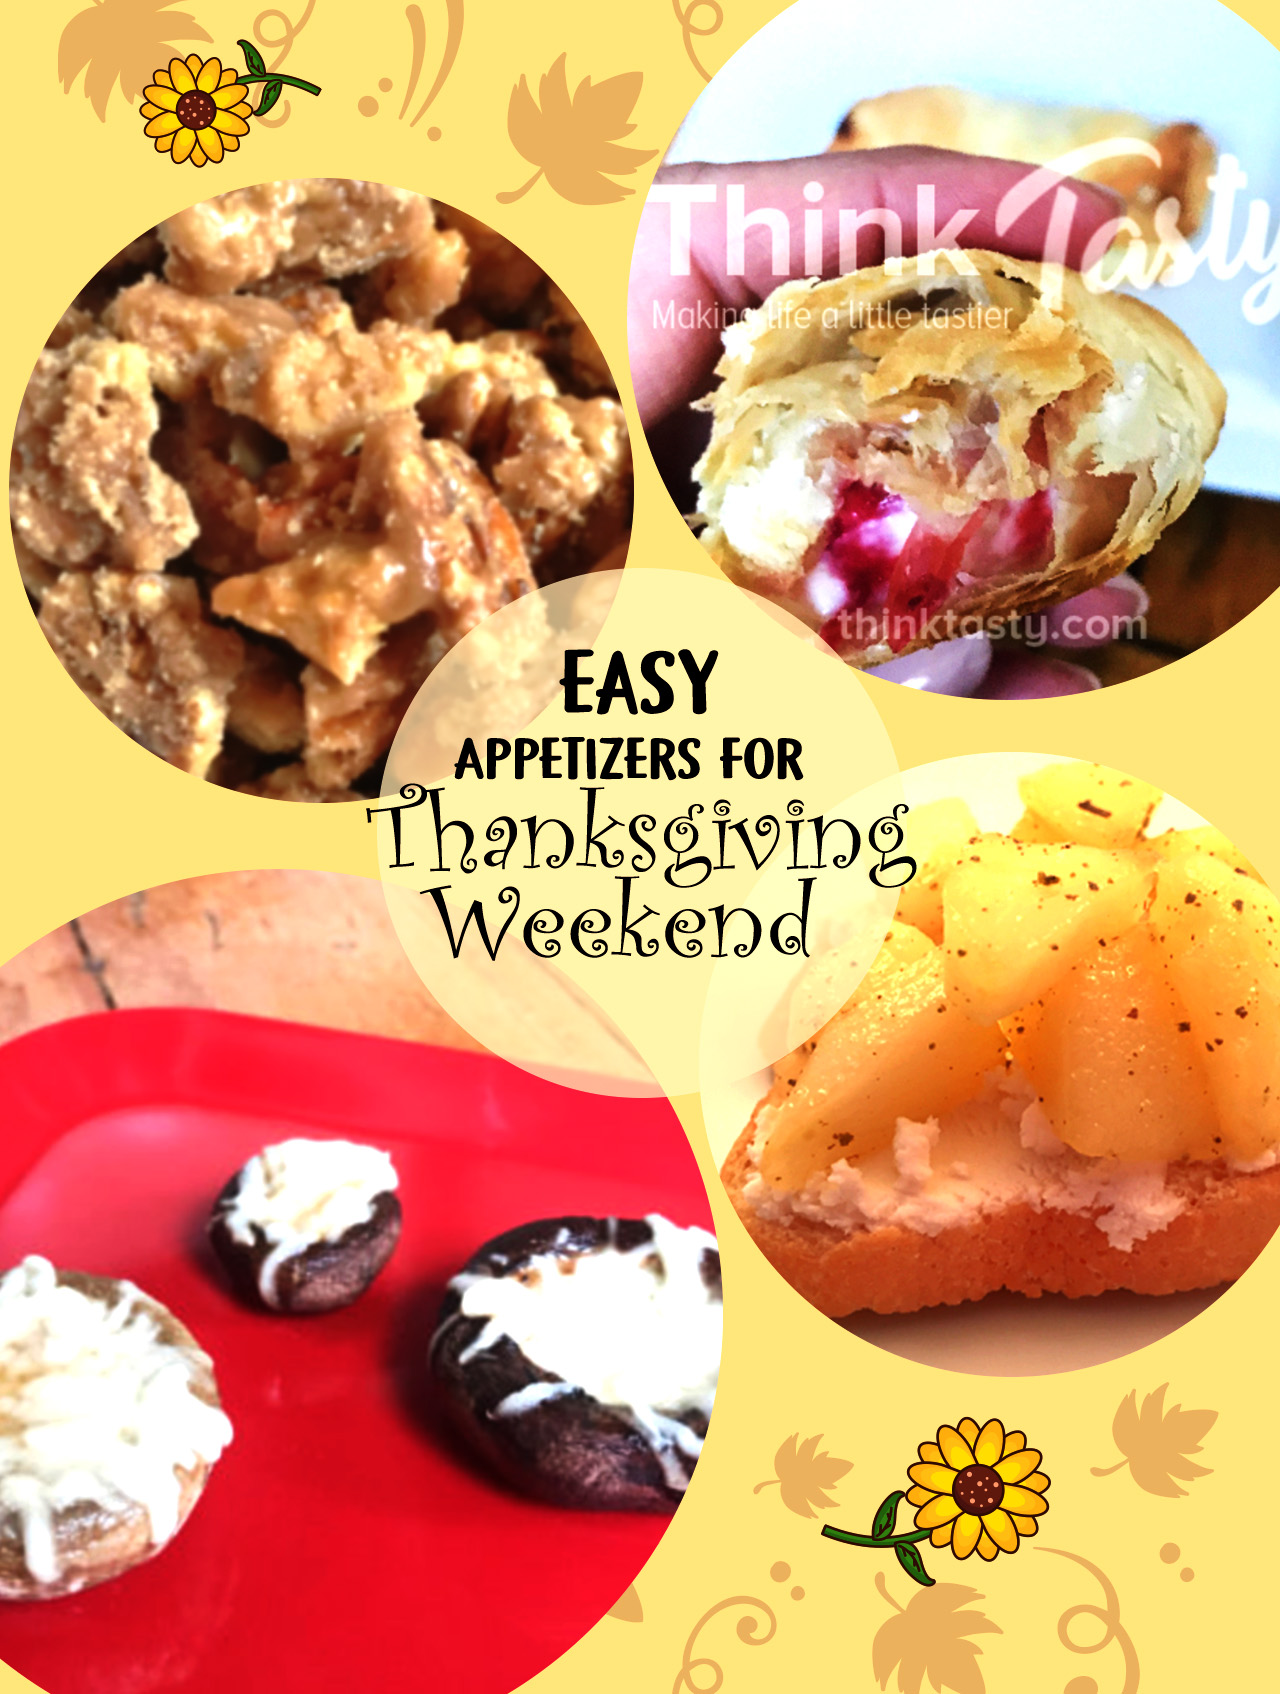 Easy Appetizer Recipes for Thanksgiving Weekend